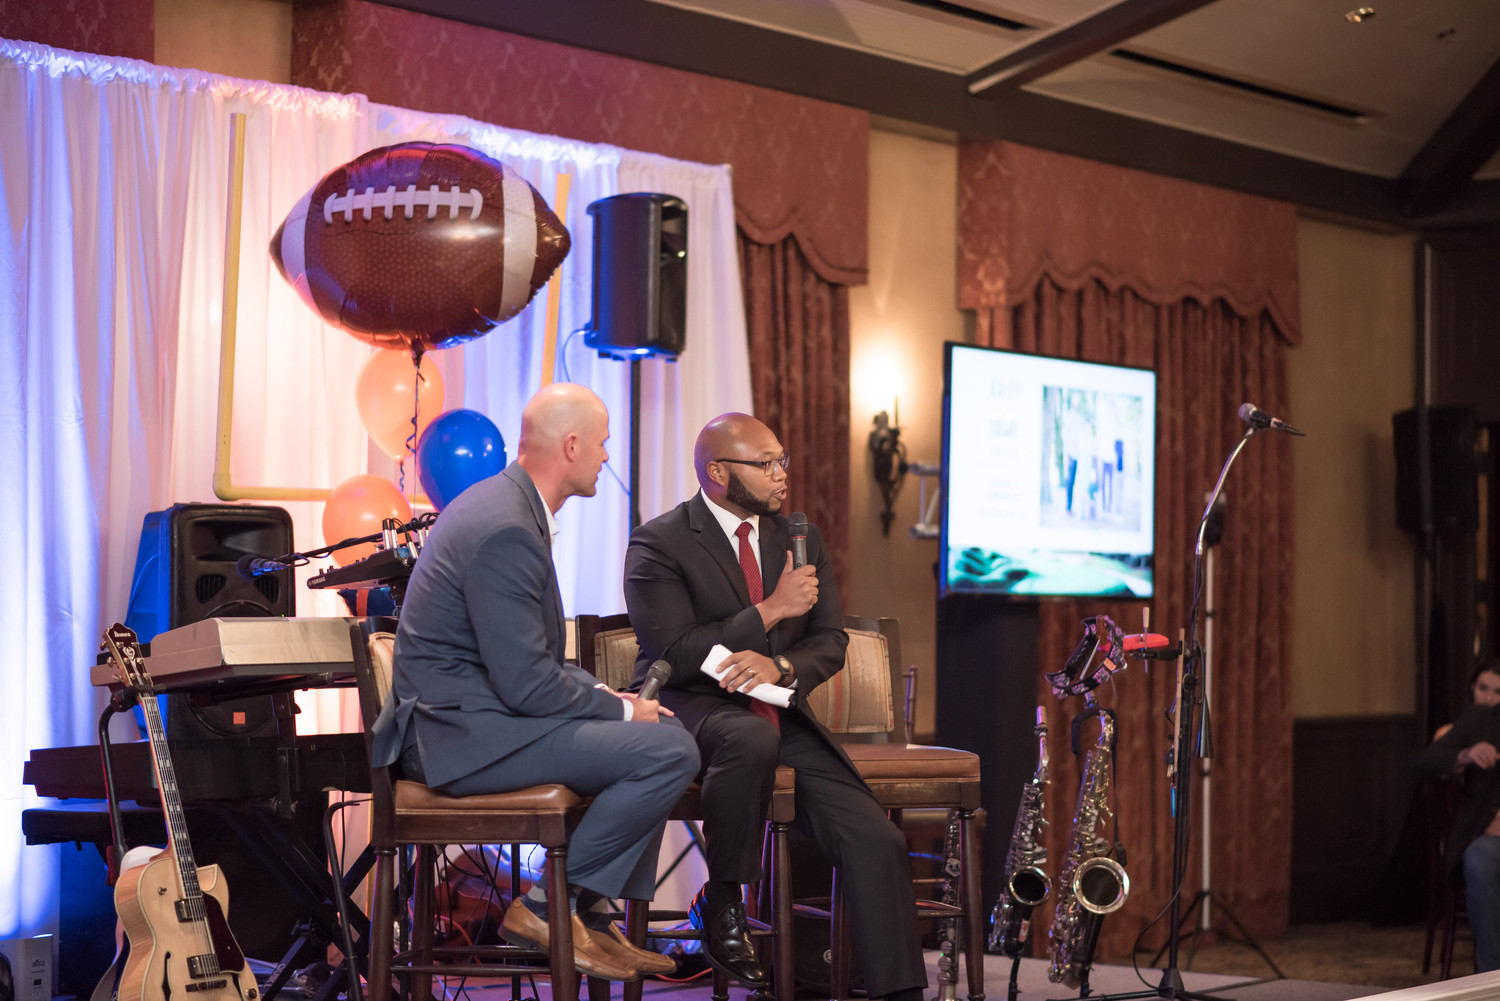 Danny Wuerffel interviews Demetrius Summerville, executive director of Kaley Square in Orlando (Desire Street Ministry partner), during the dinner Thursday evening.